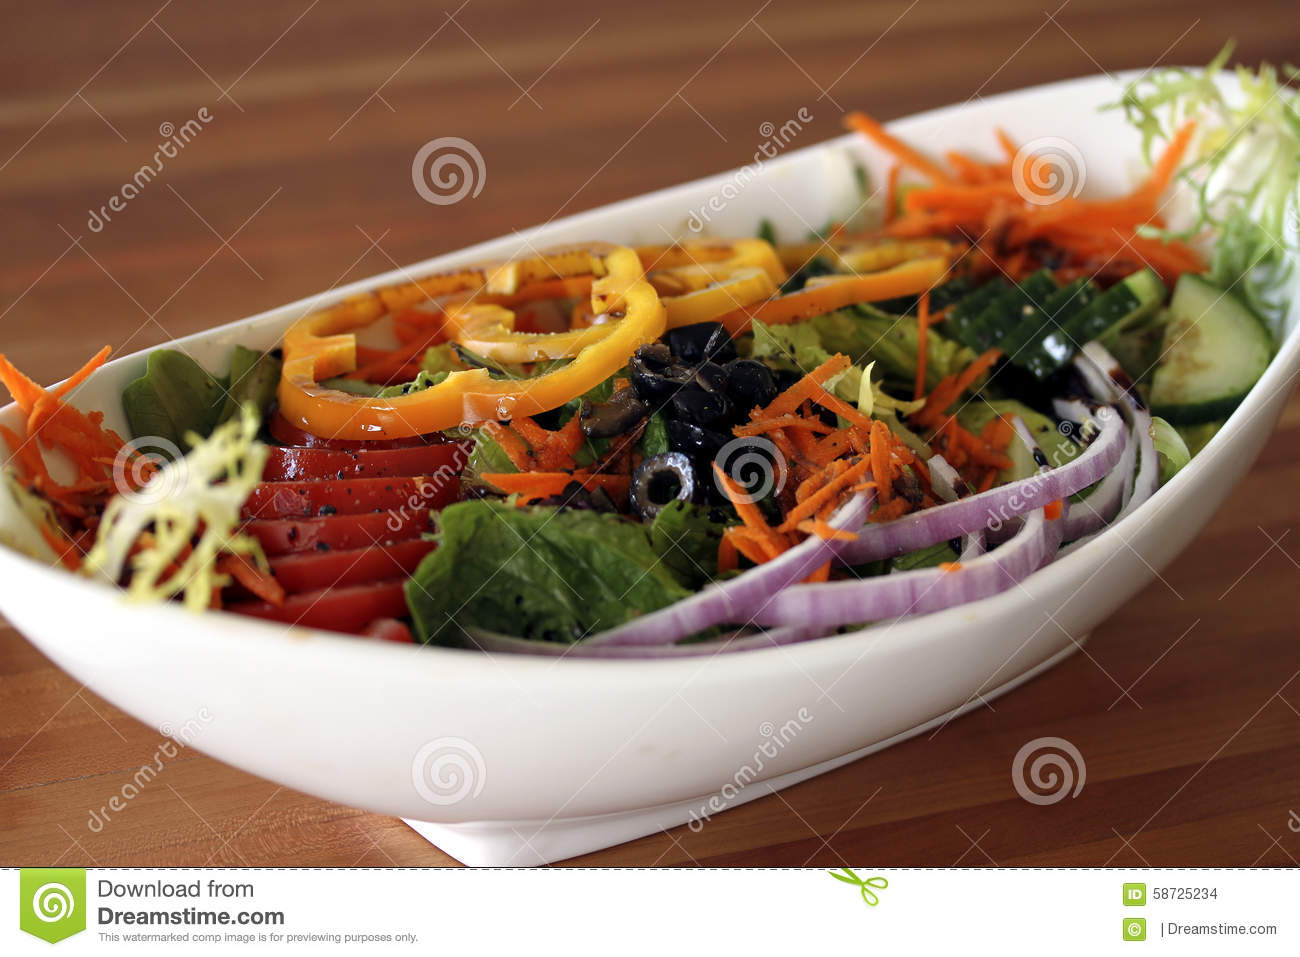 health salad display in bowl stock photo image of flight hand